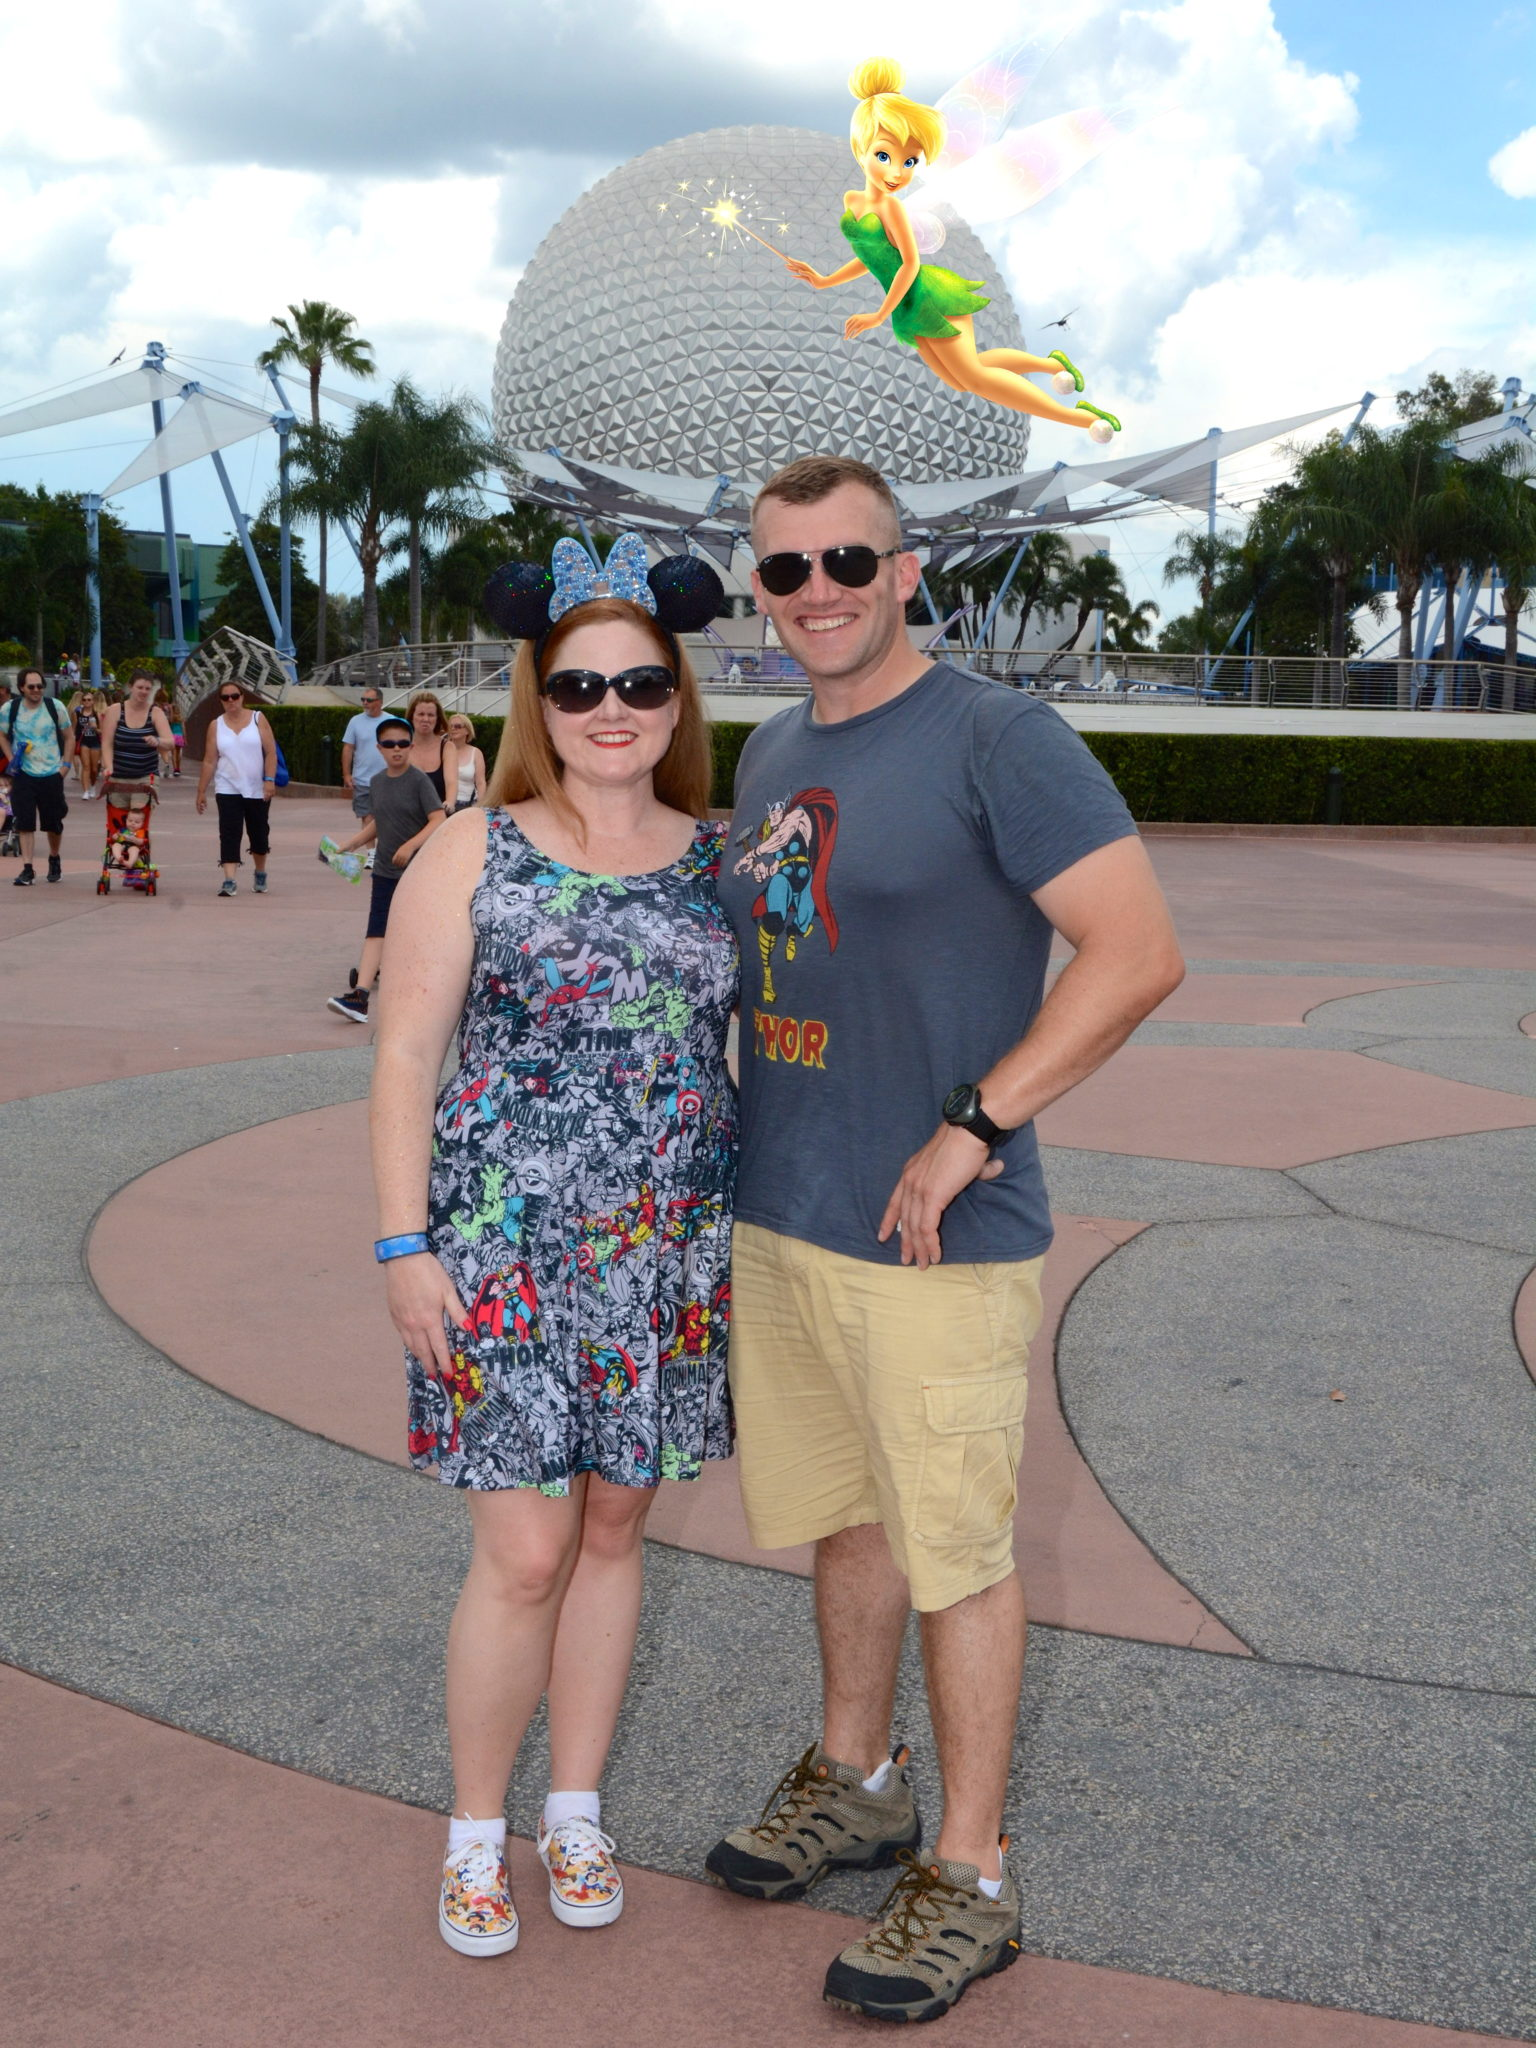 Visiting WDW for July Fourth